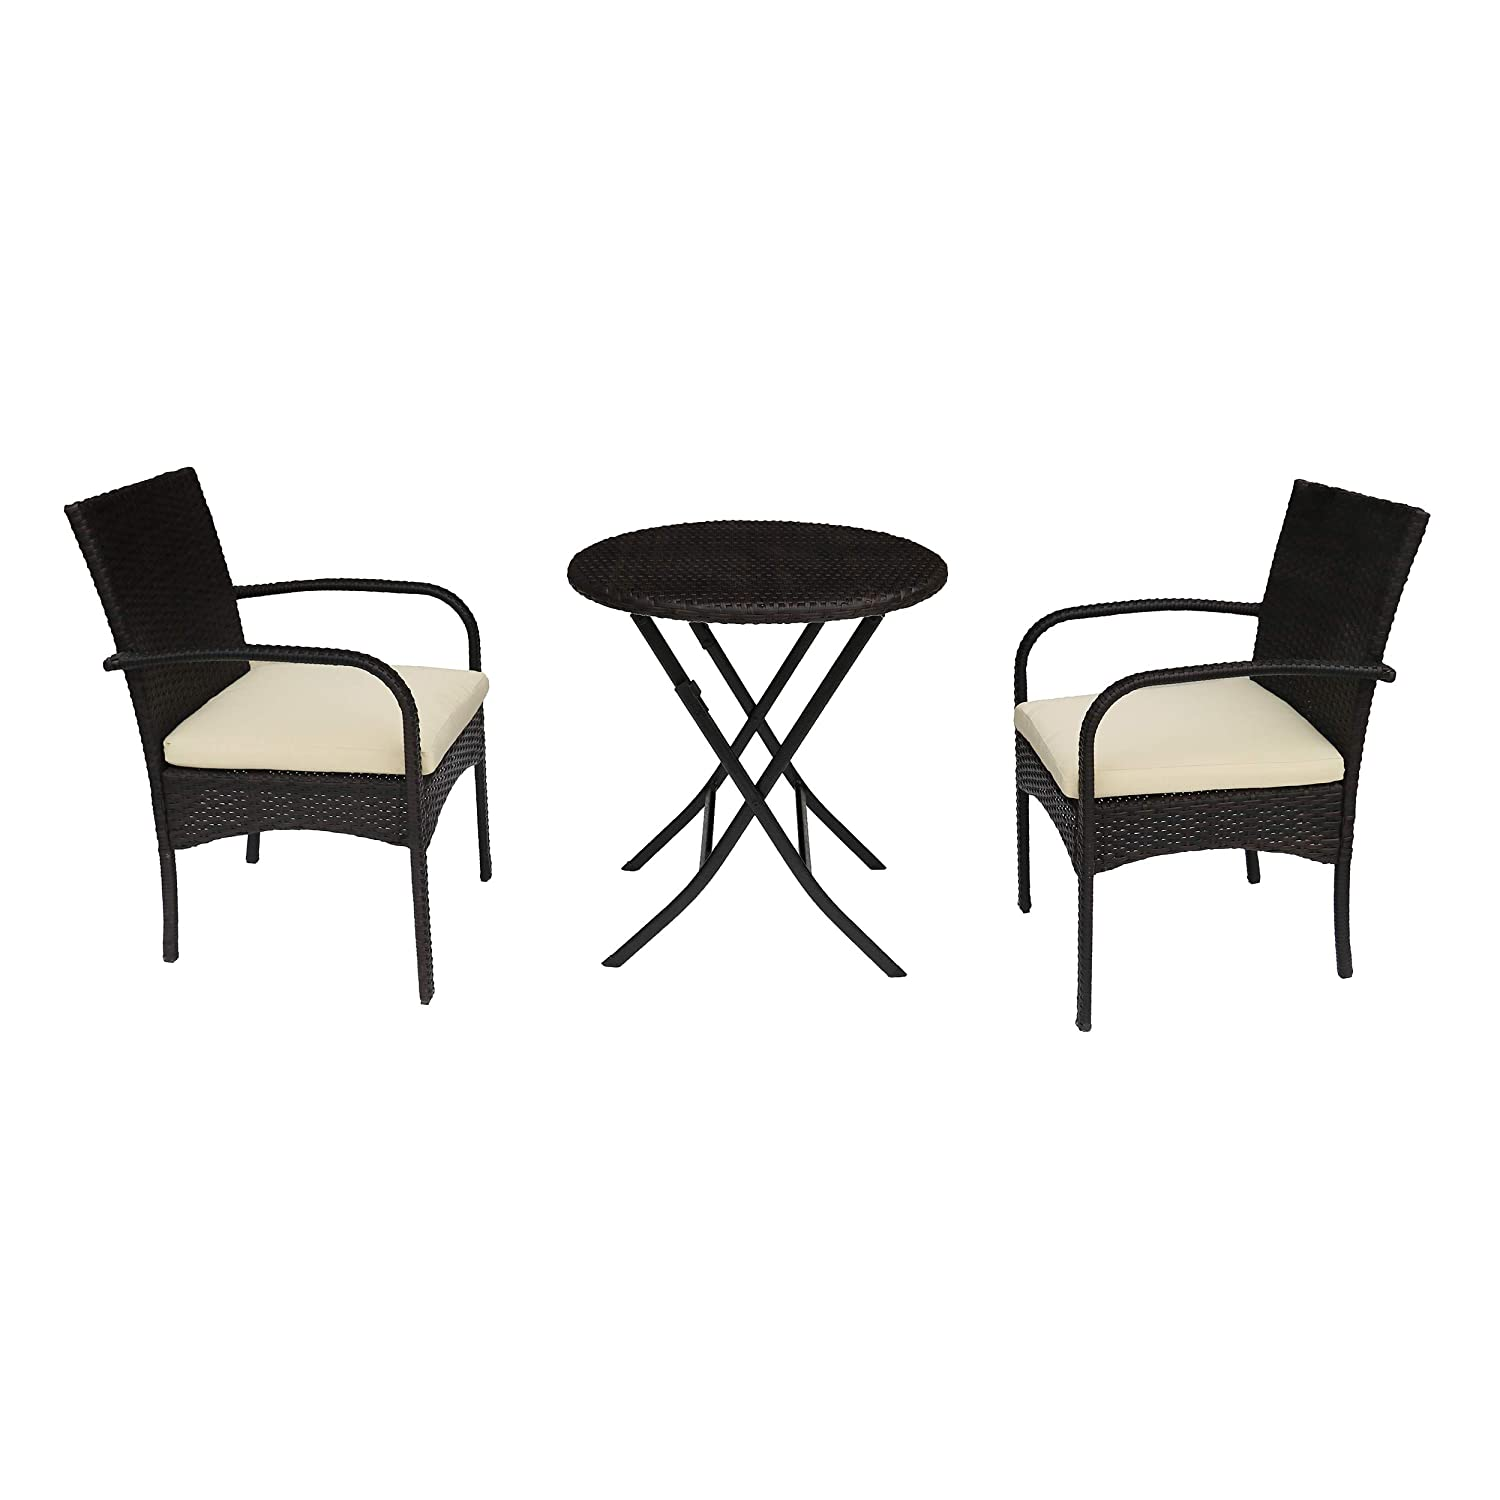 Christopher Knight Home Kevin Outdoor 3 Piece Wicker Bistro Set, Multi Brown with Cream Cushion